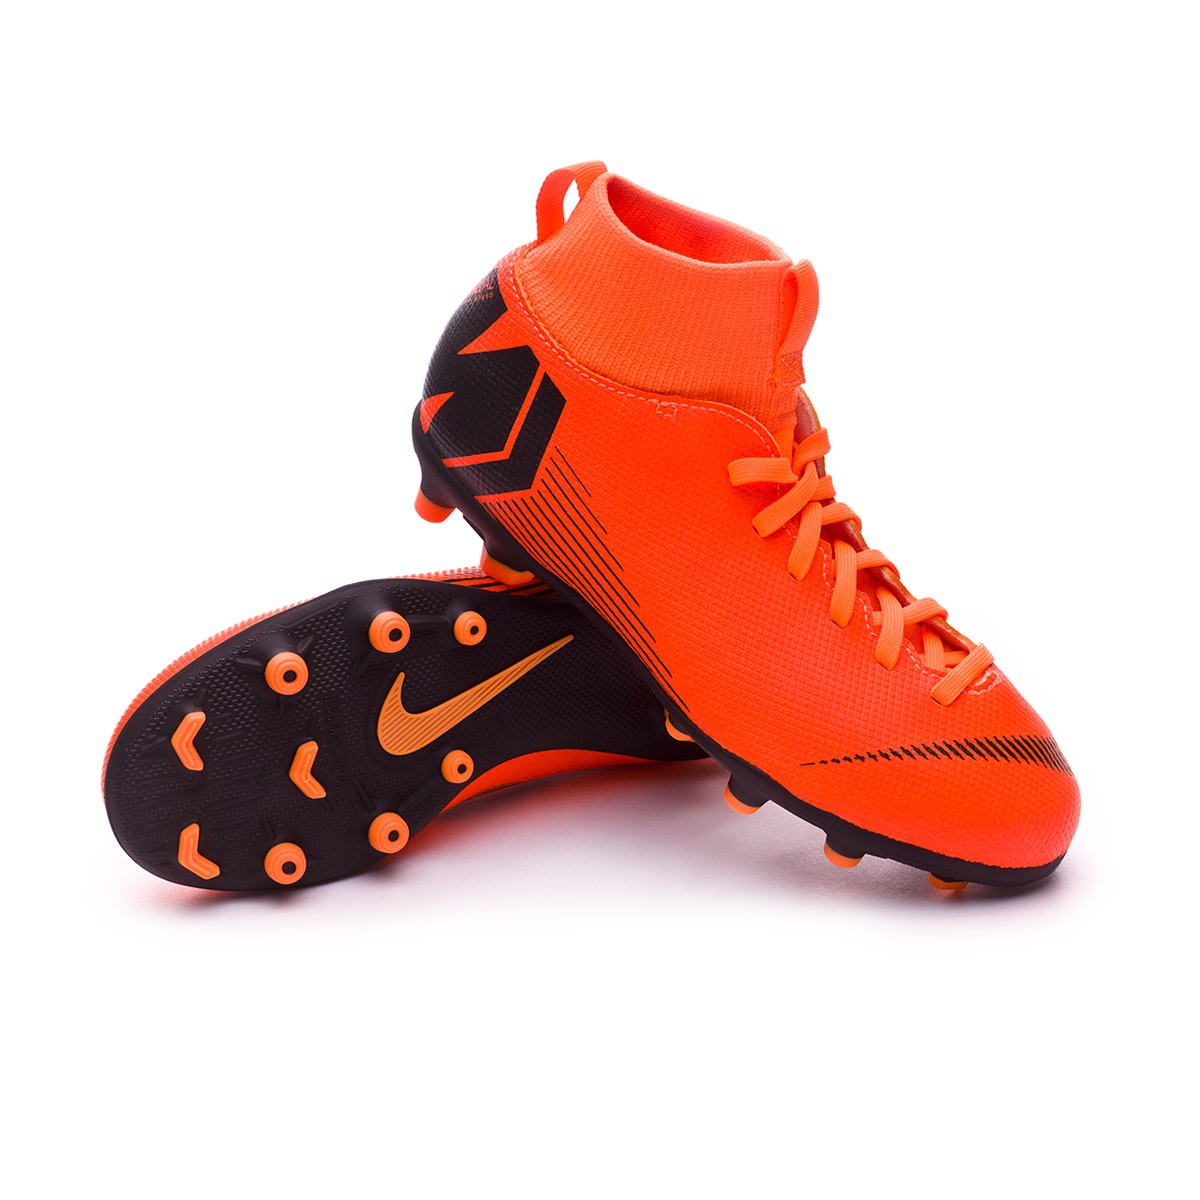 0366e34ee11 Chuteira Nike Mercurial Superfly VI Club MG Crianças Total orange ...